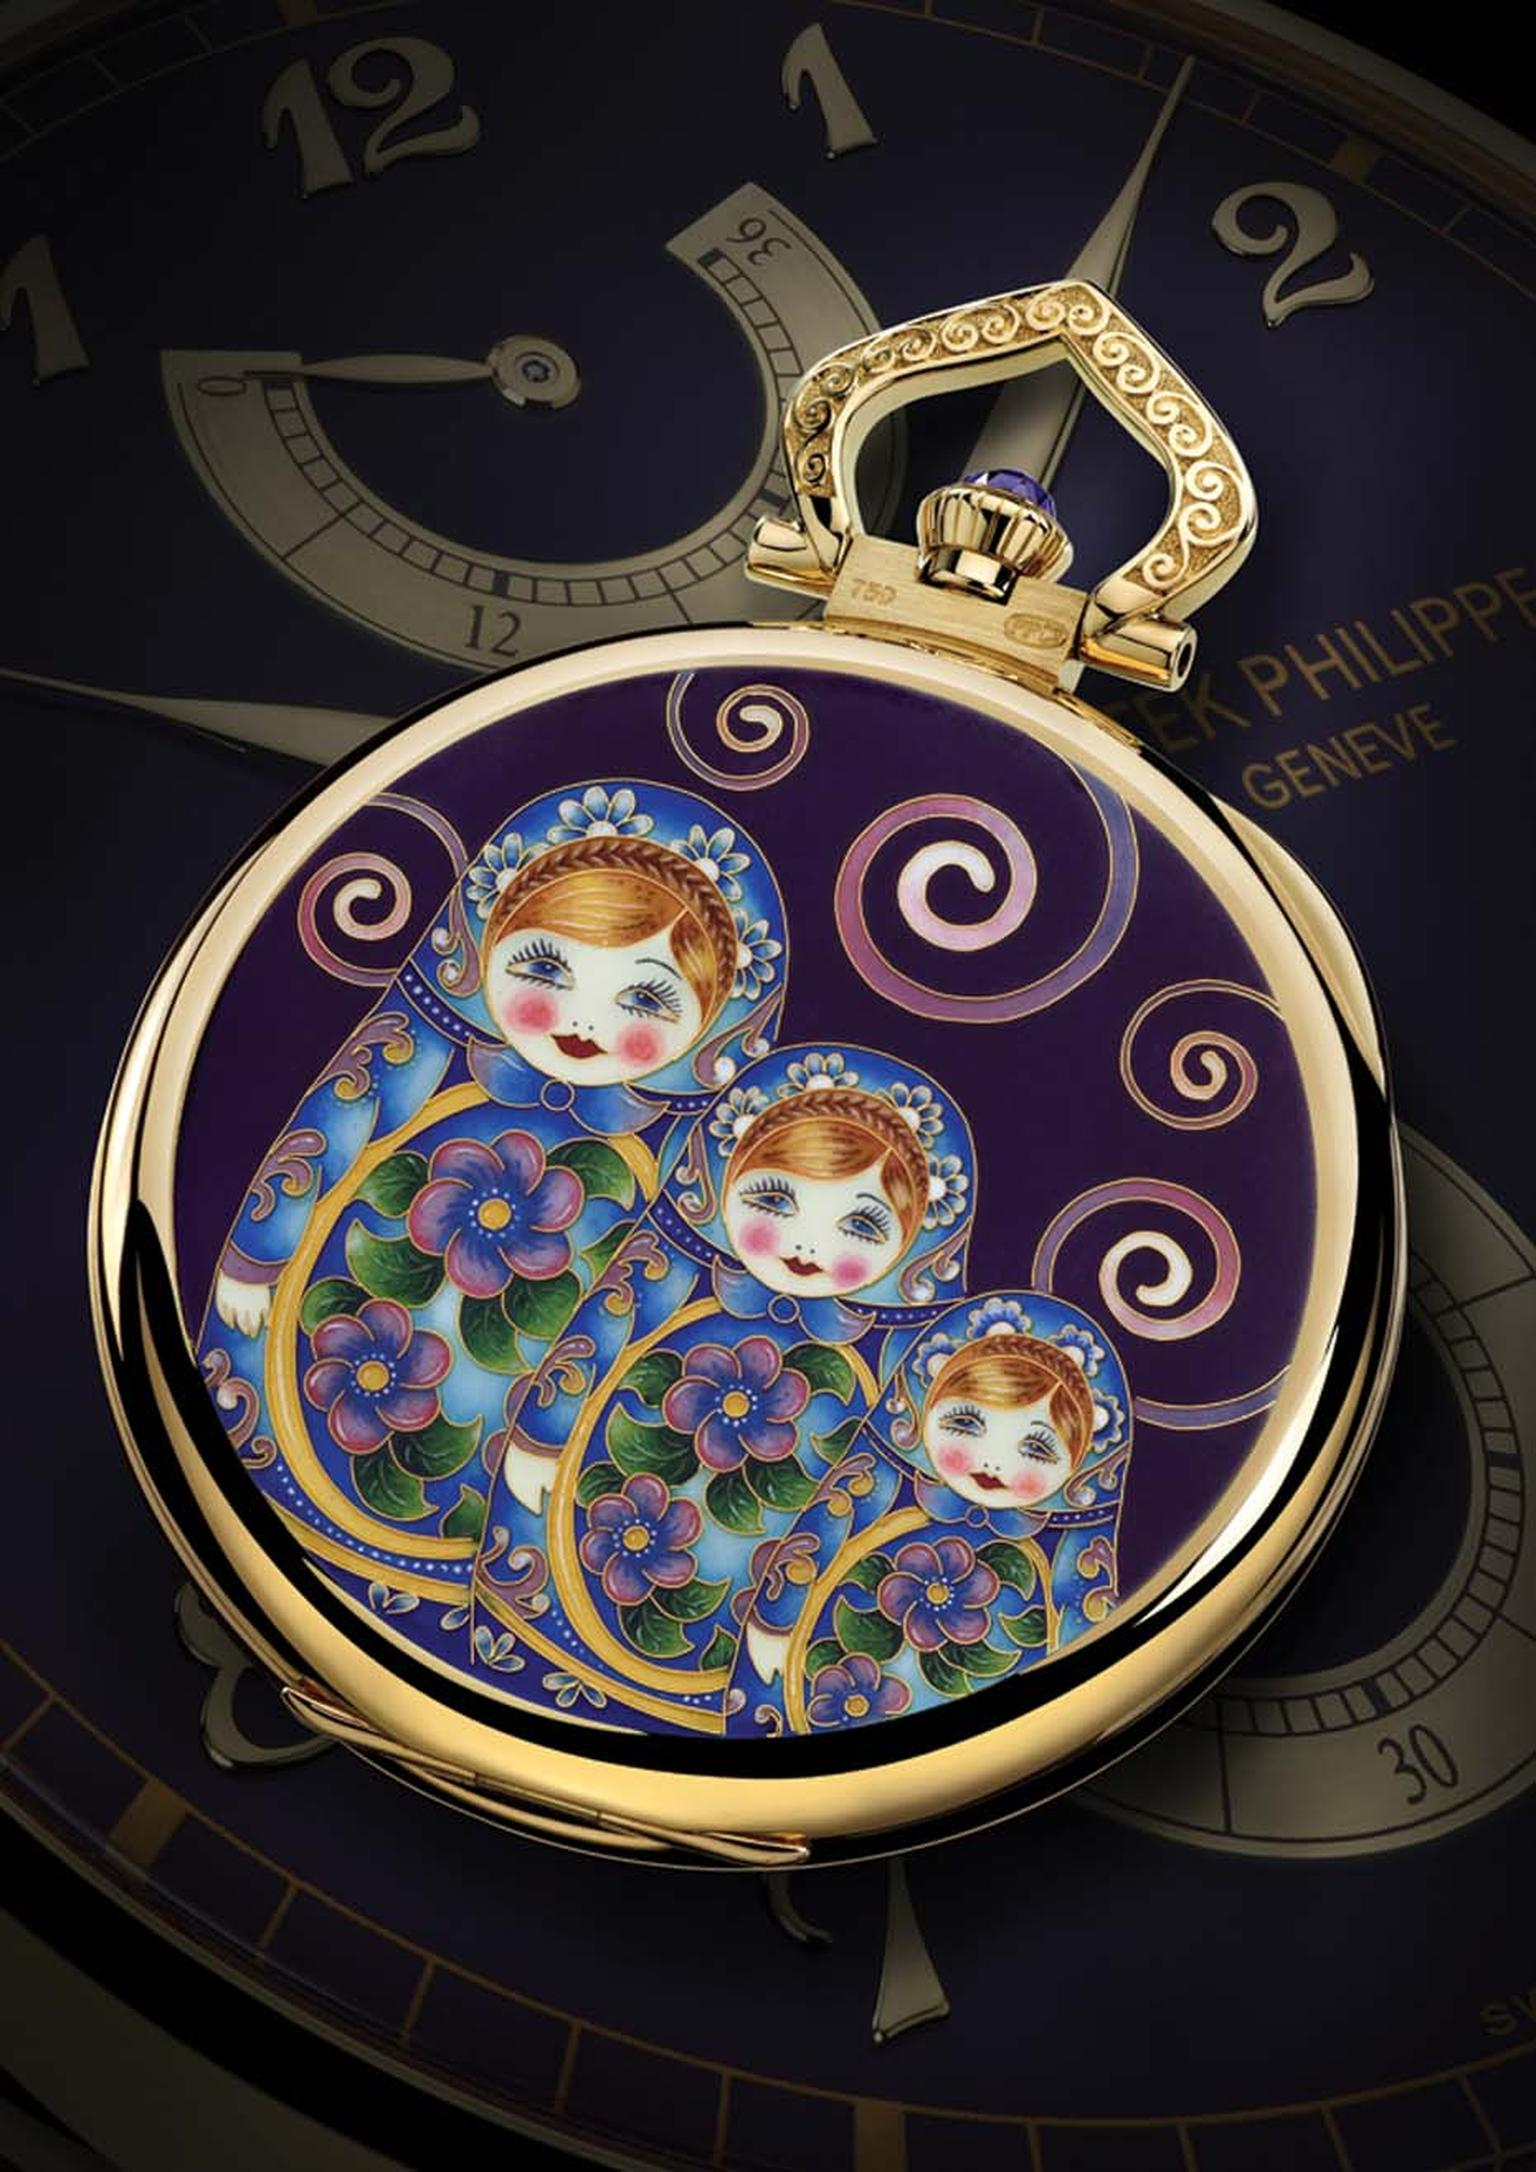 Patekpocketwatches001.jpg